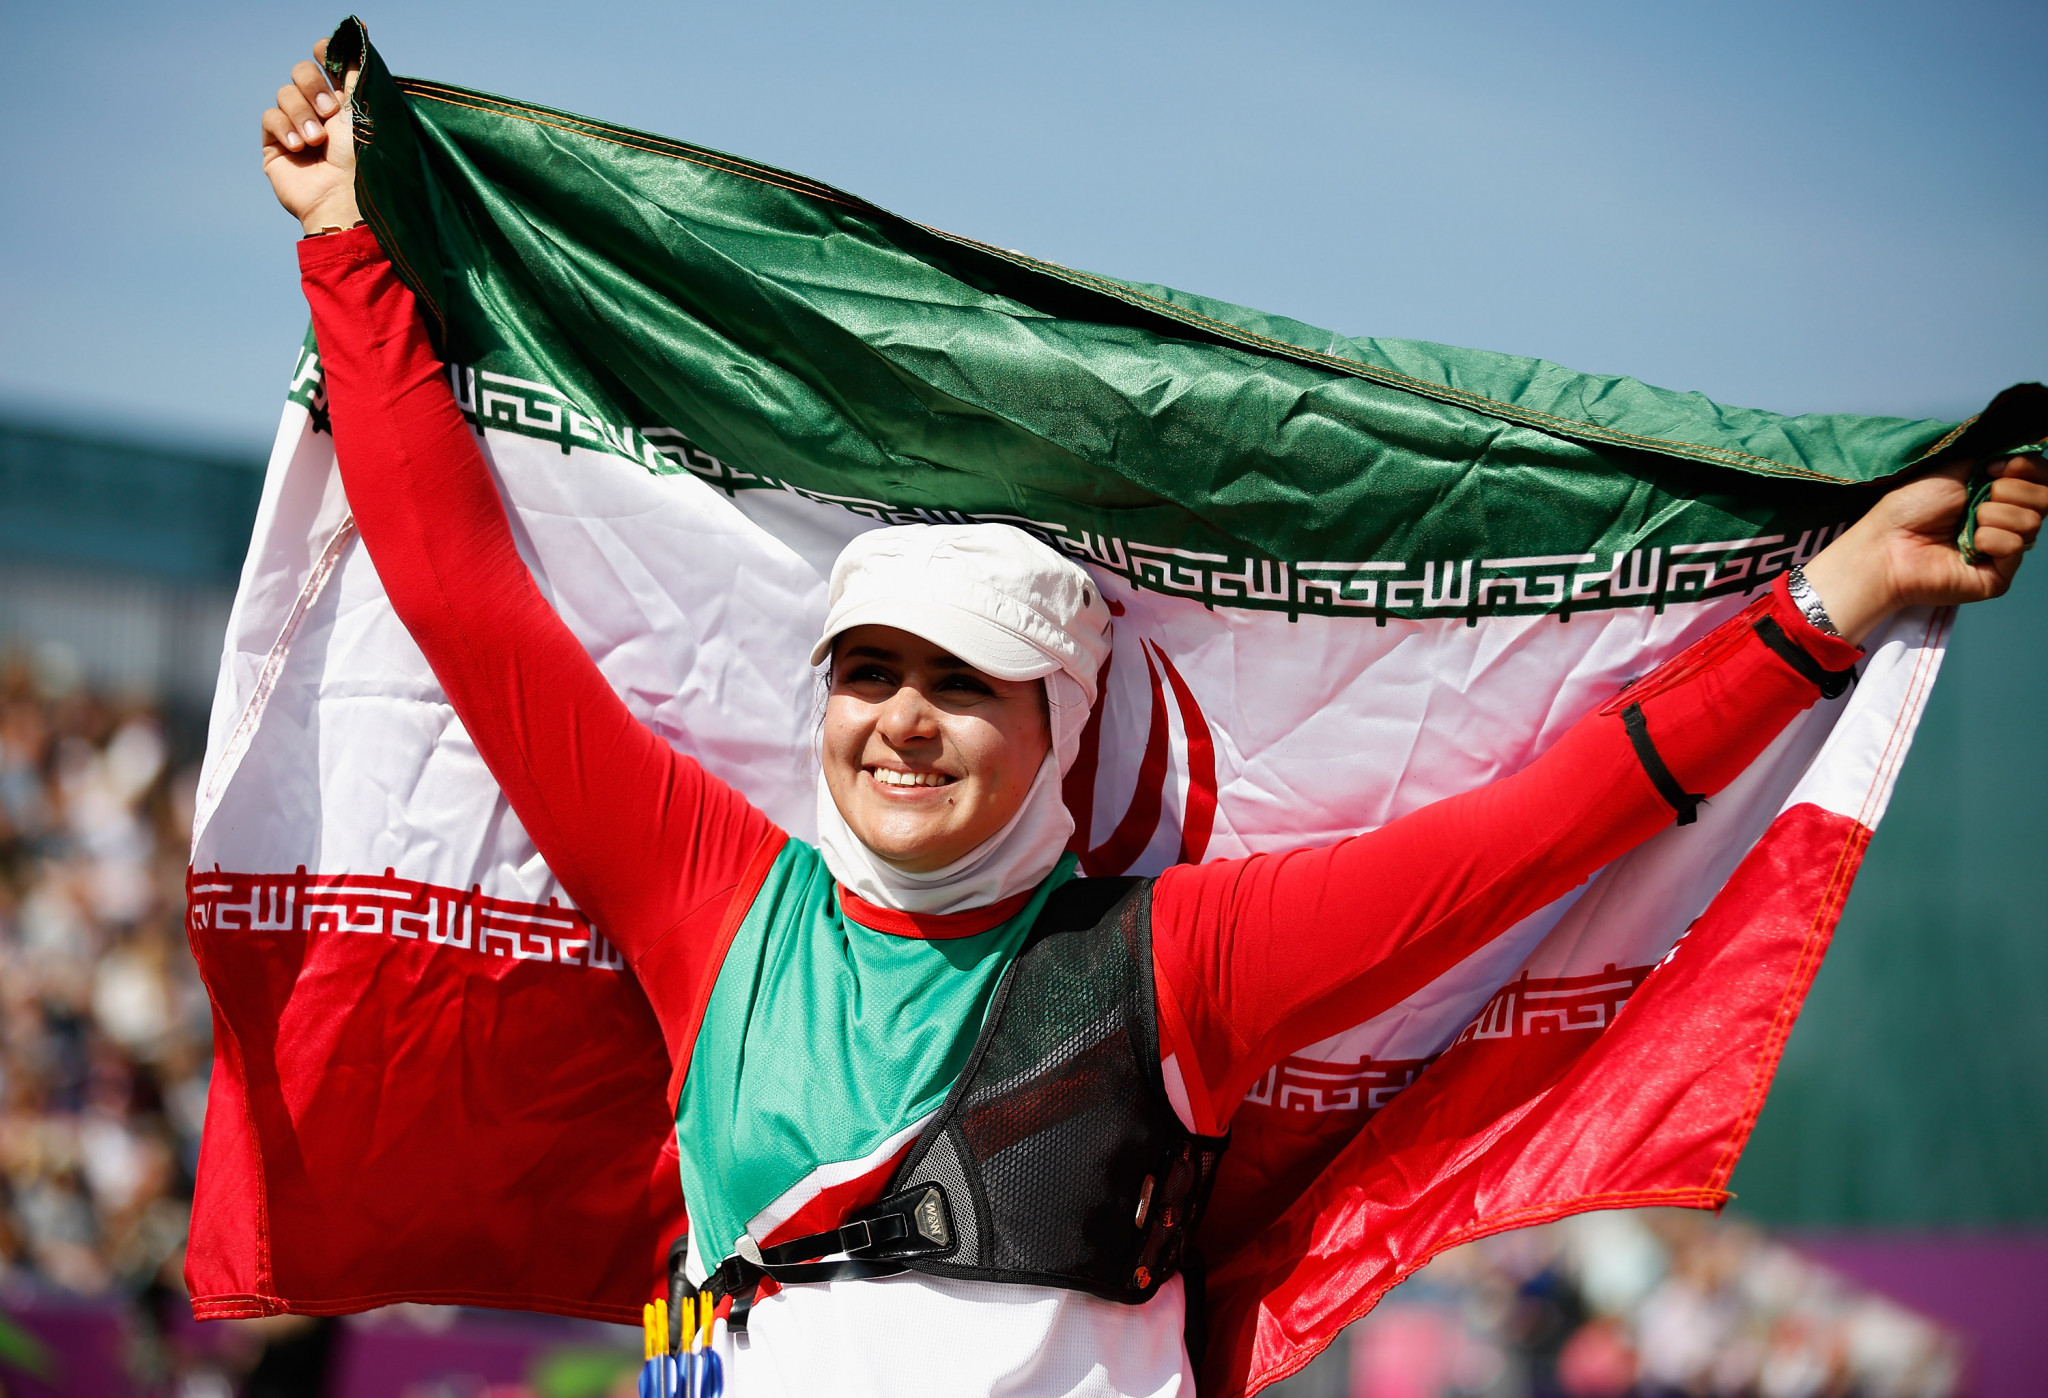 Zahra Nemati became the first Iranian woman to win an Olympic or Paralympic gold medal at the London 2012 Paralympics ©Getty Images